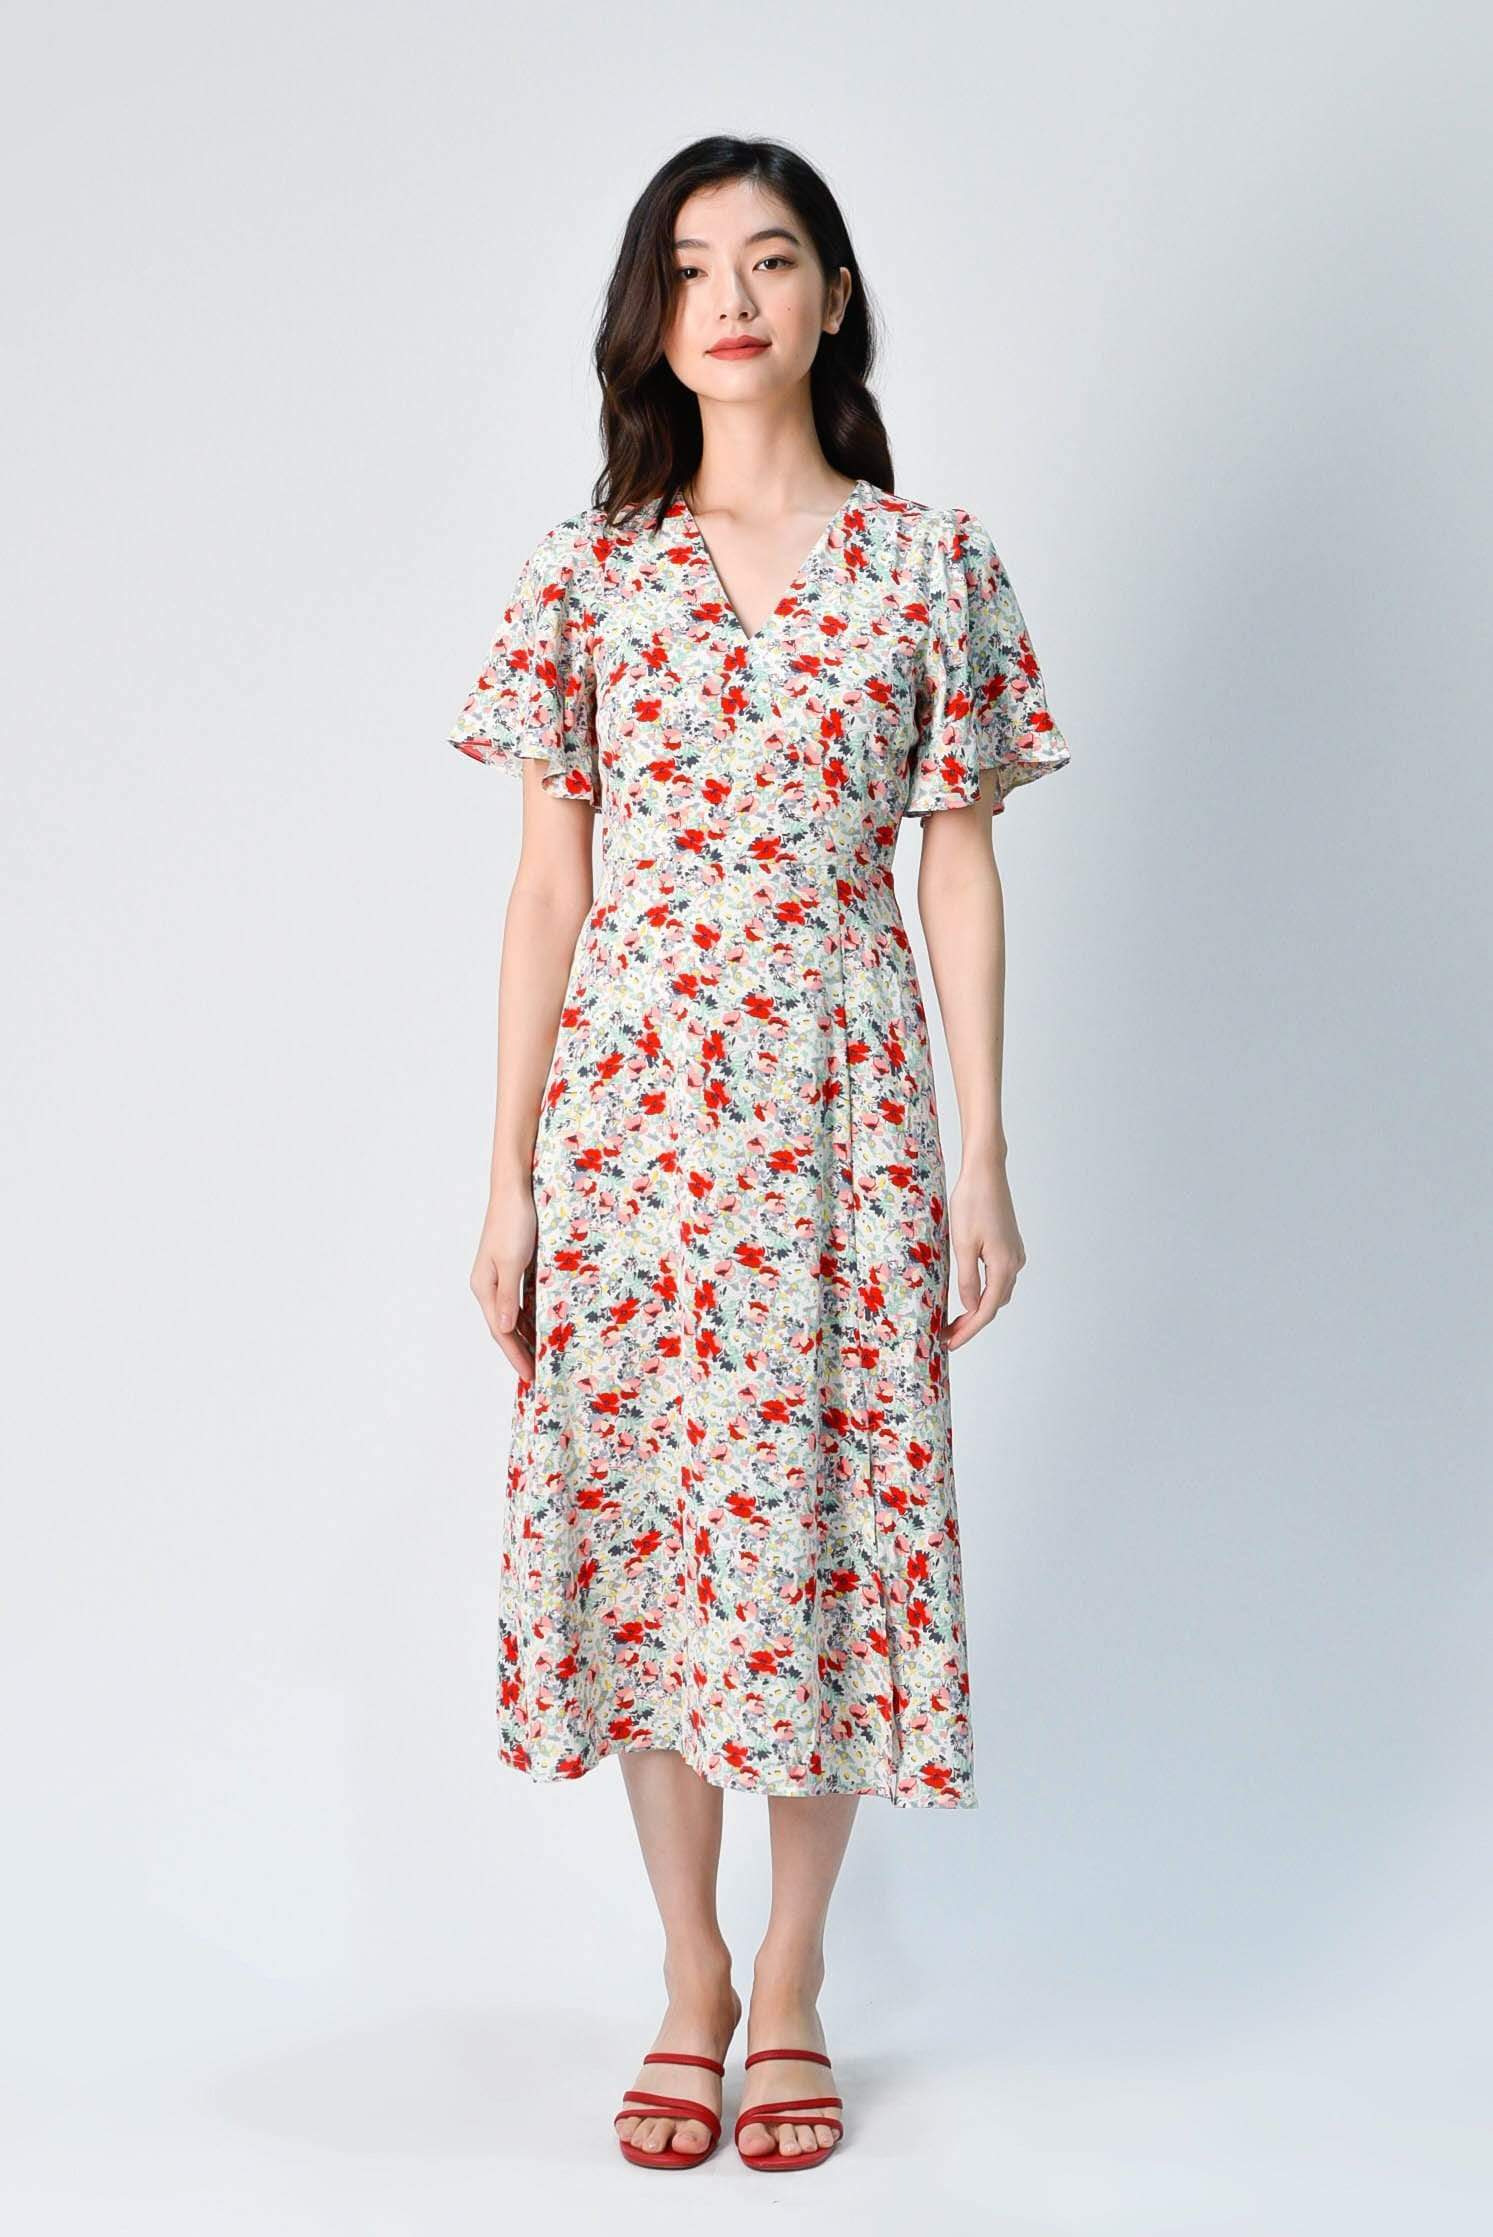 FIORE WHITE FLORAL FLUTTER-SLEEVED MIDI DRESS